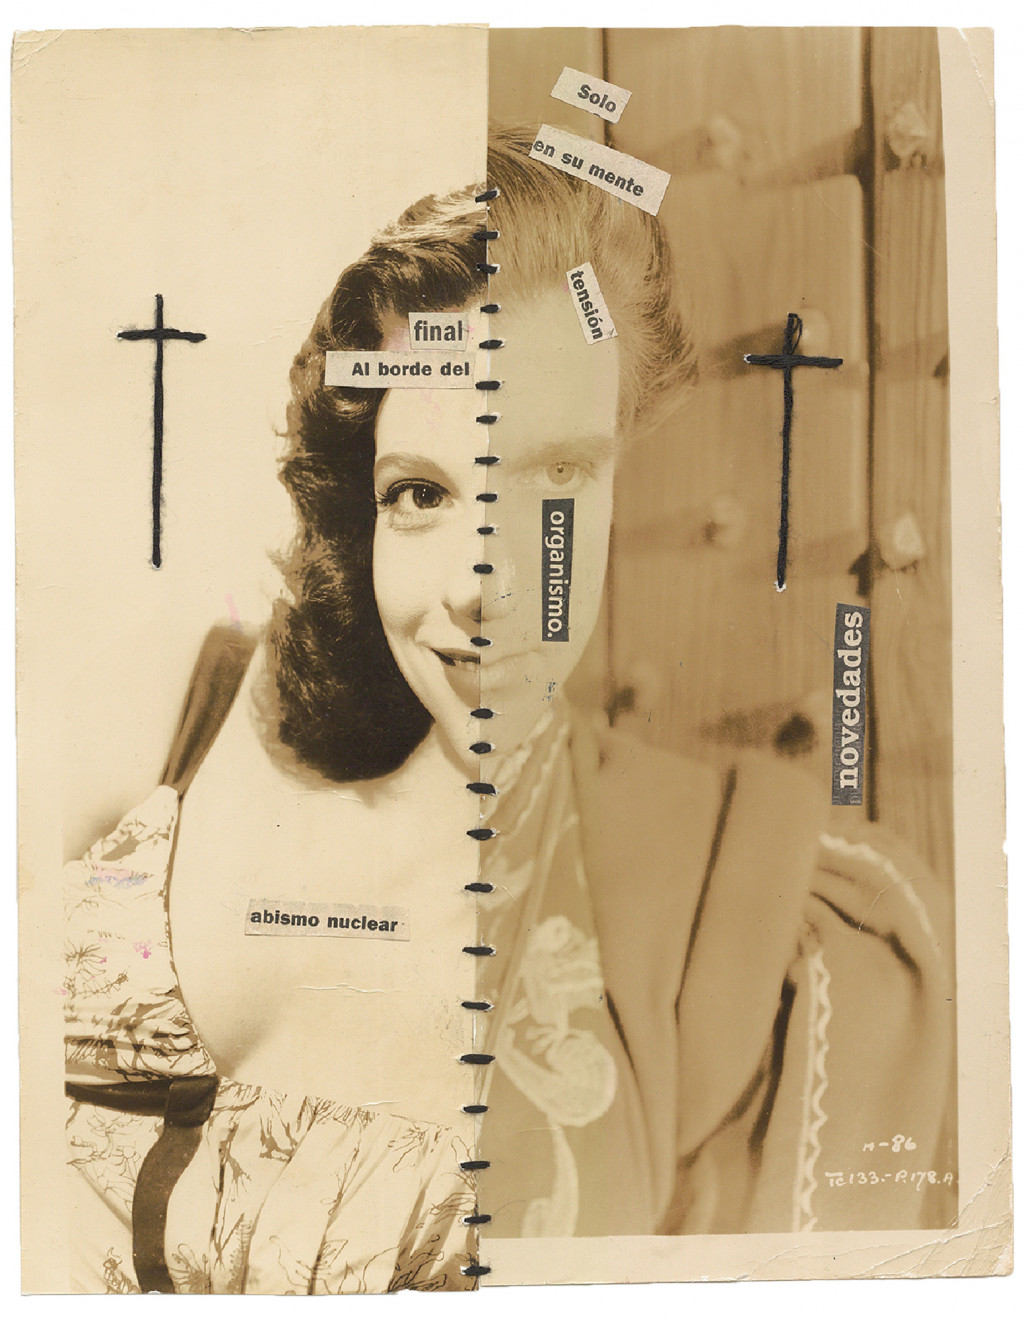 Jorge Alberto Cadi, *untitled*, circa 2015. collage and sewing on photography, 10.91 x 8.54 in - © christian berst — art brut